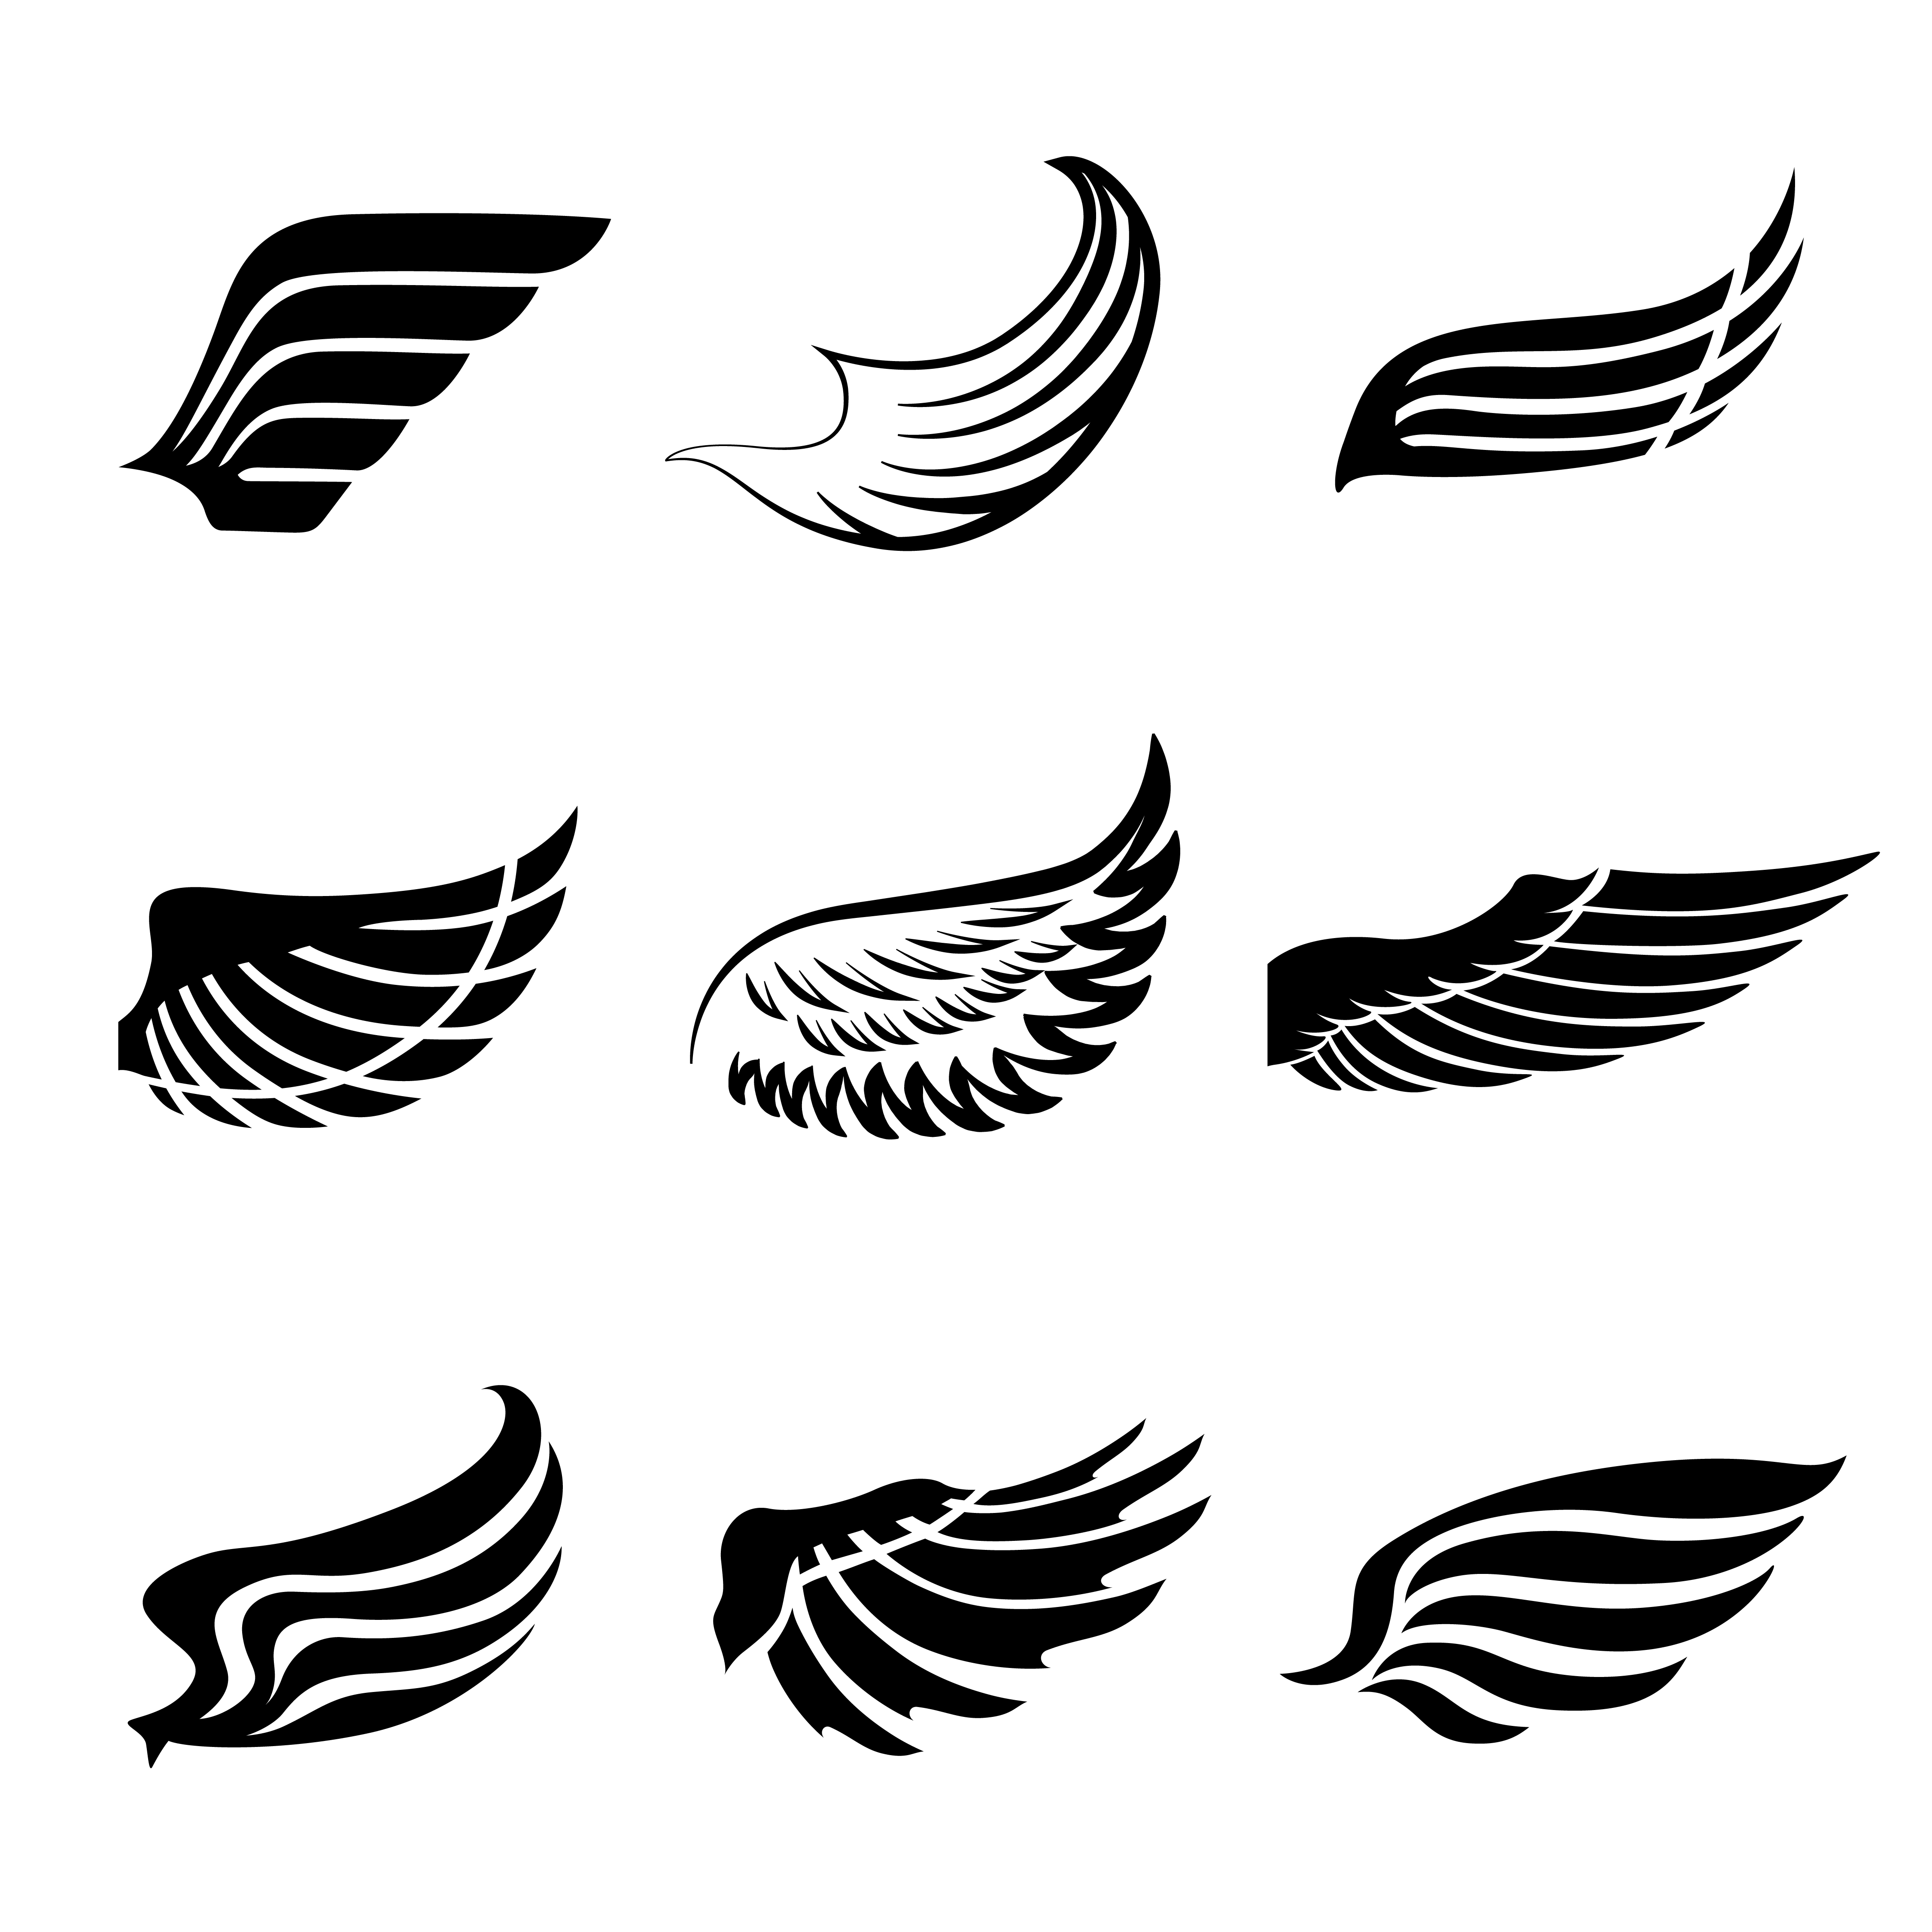 17b50e9a1 Abstract feather wings icons set - Download Free Vector Art, Stock Graphics  & Images